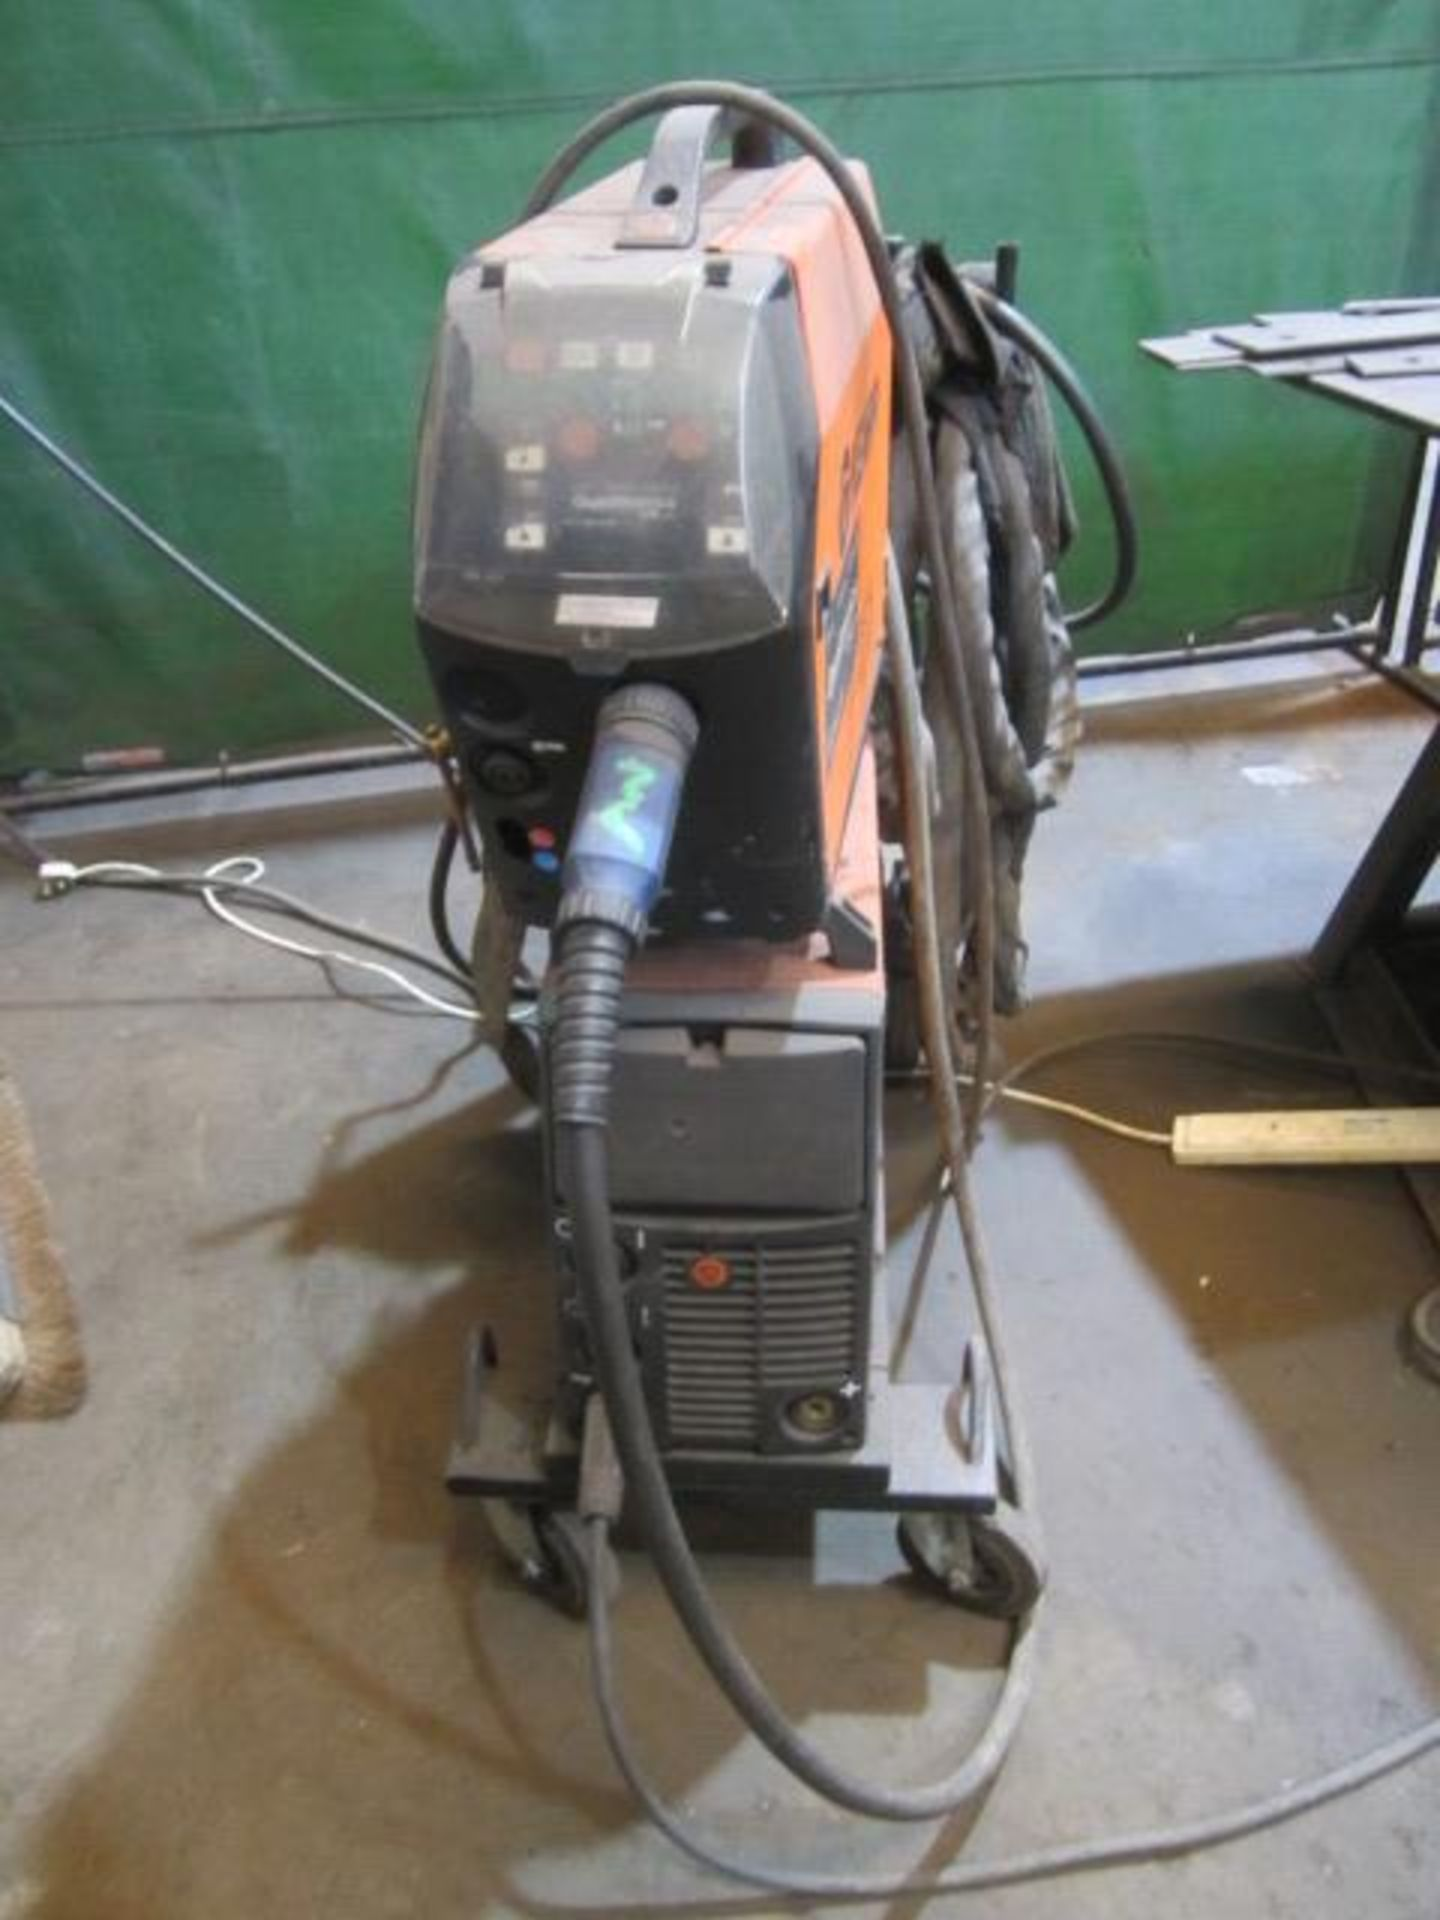 Kemppi Fast Mig M420 mig welder, serial no. 2674278, with Fast Mig MXF65 wire feeder, serial no. - Image 2 of 7